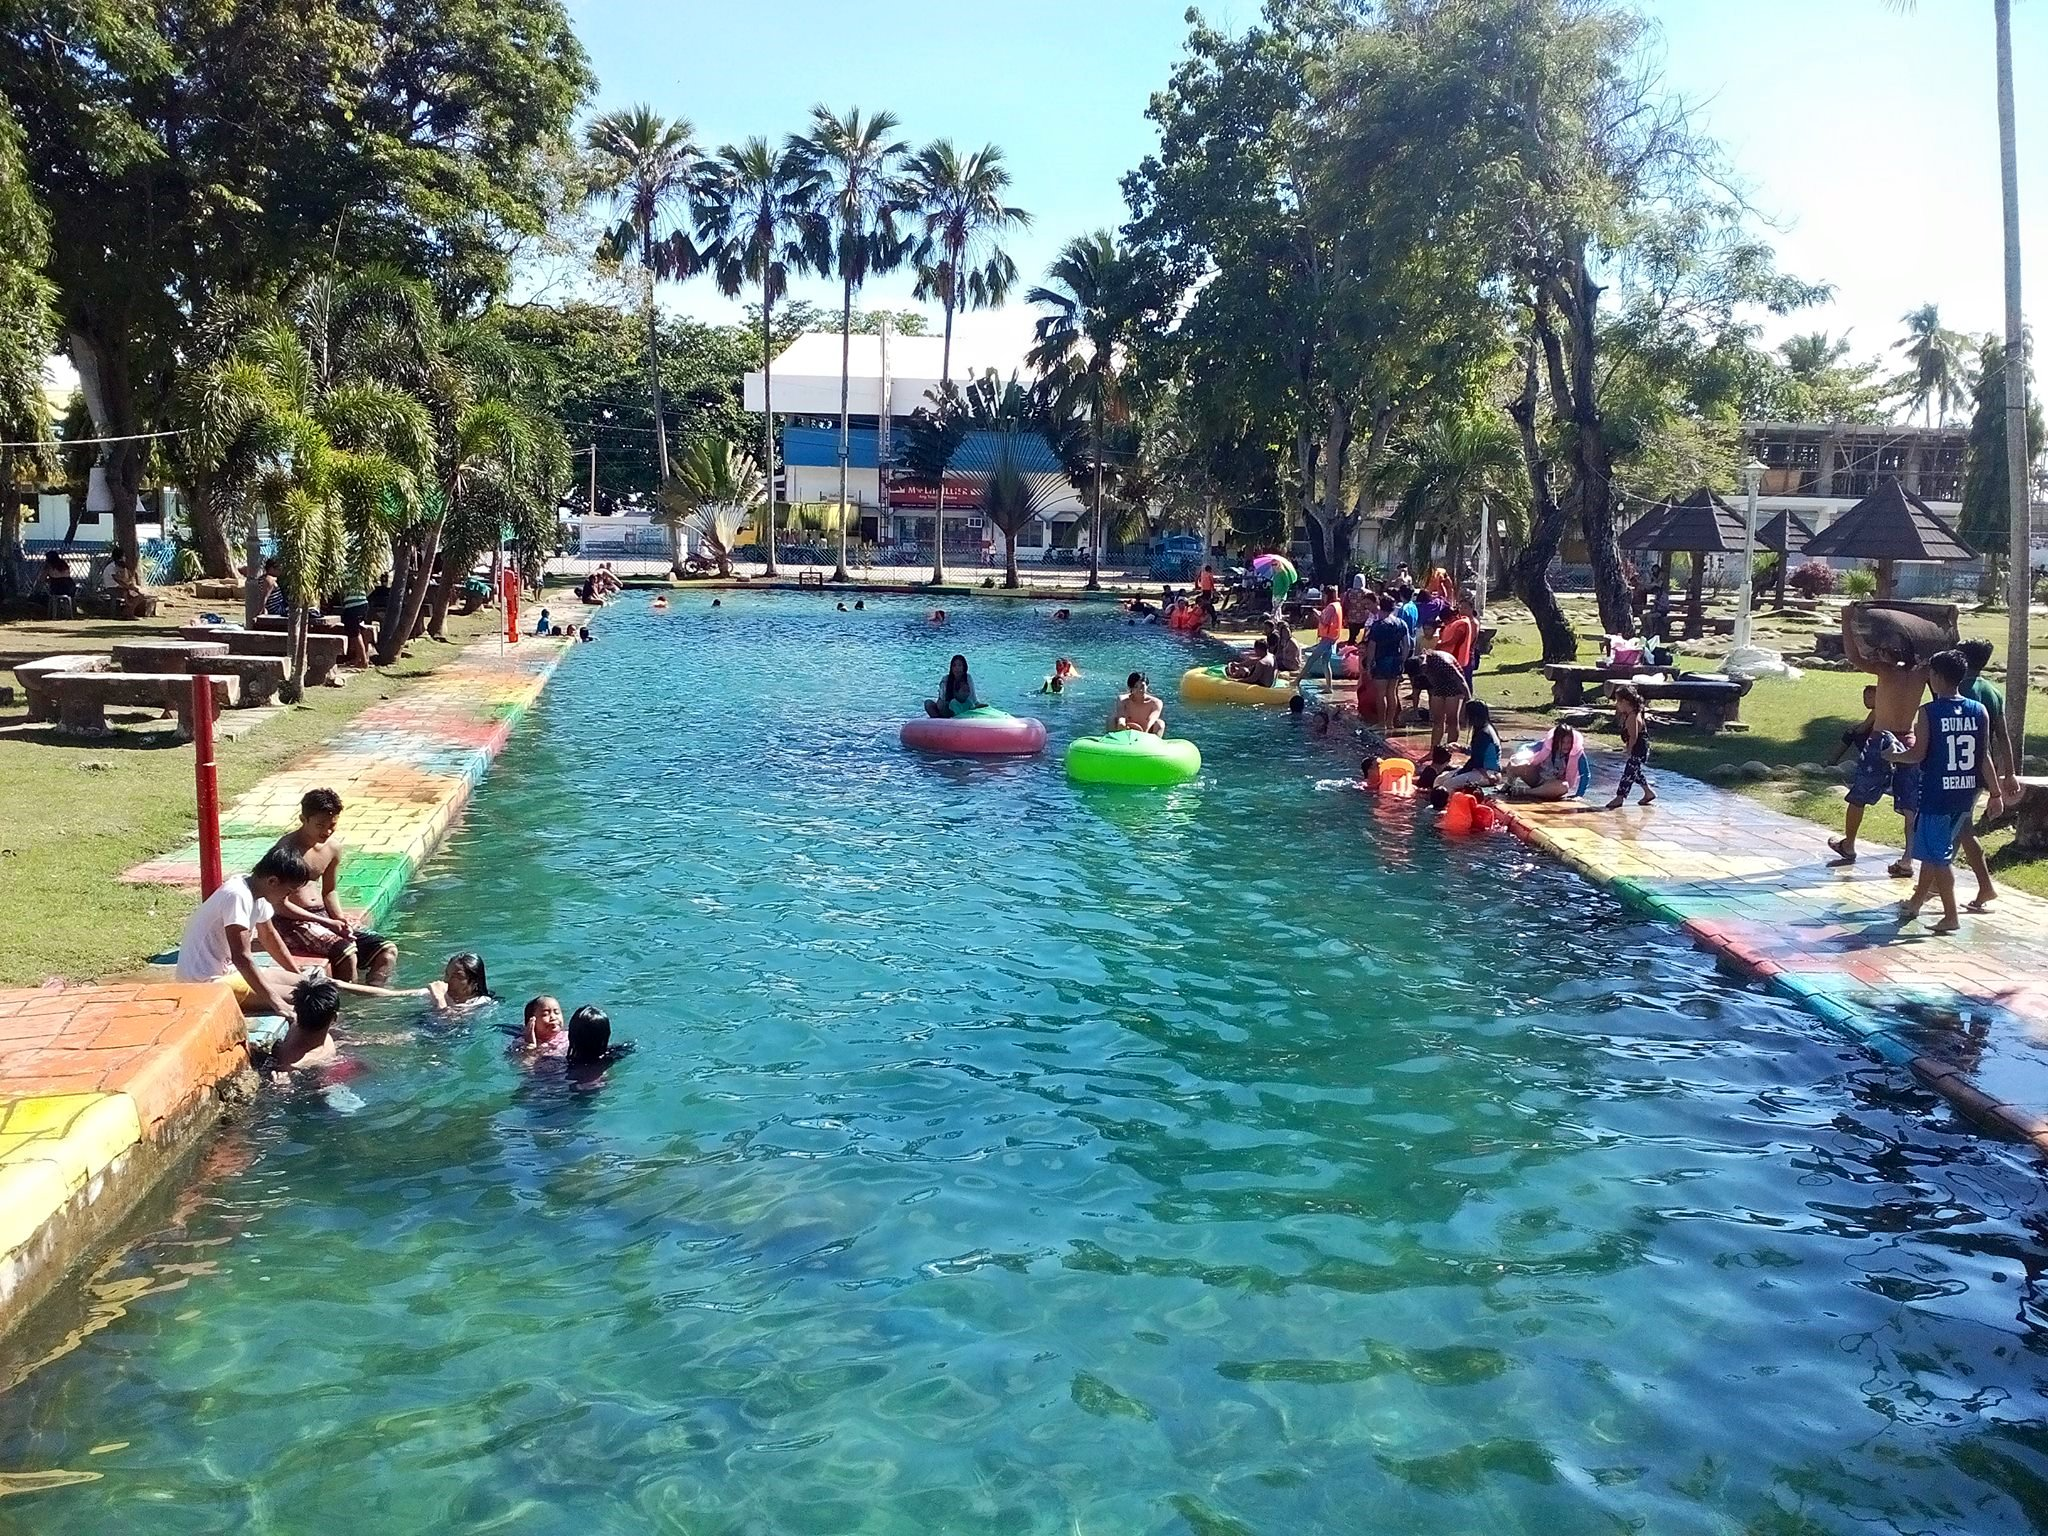 Capilay Spring Park, San Juan, Siquijor , Photo Credits: Gwyn Tumulak Balolong, Web: http://www.siquijordirectory.com, Instagram: https://www.instagram.com/gwyntbalolong/